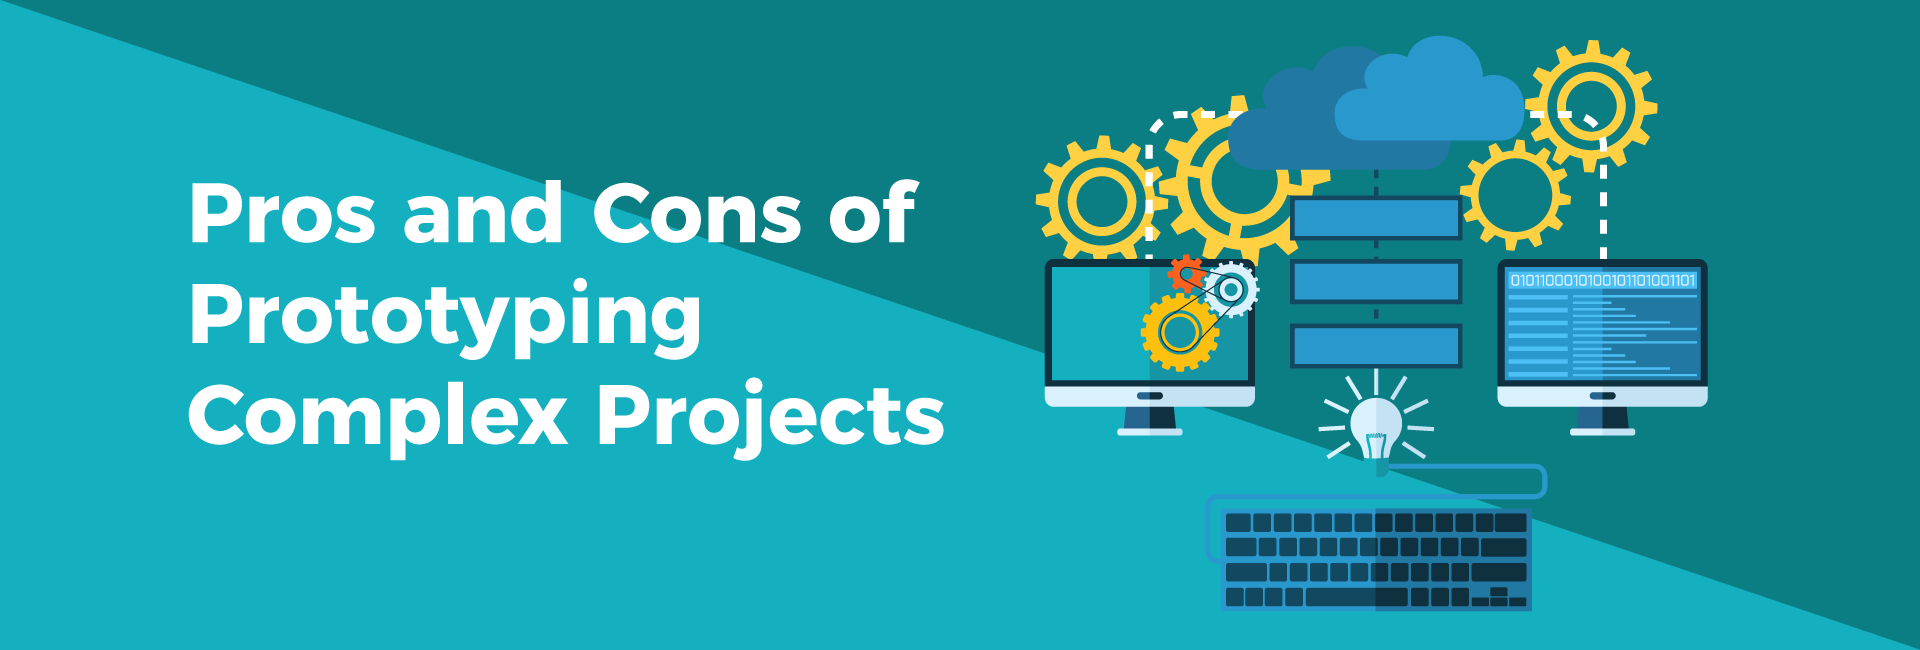 Pros and Cons of Prototyping